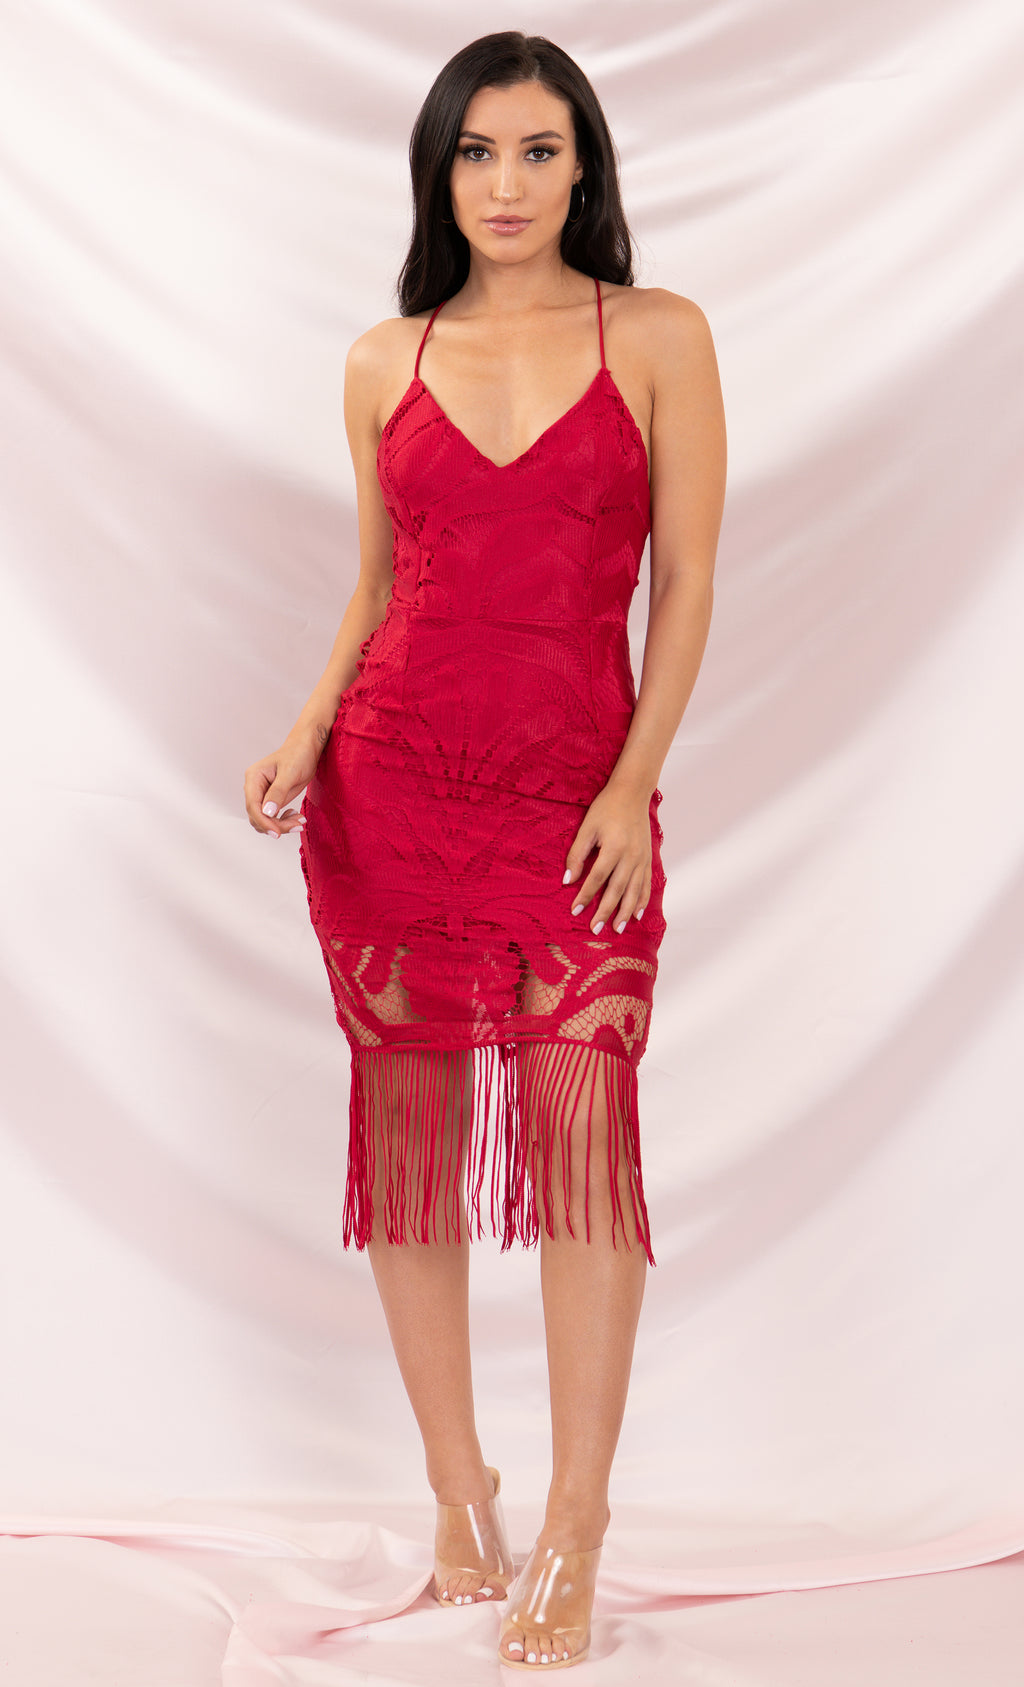 It's Your Move Crimson Red Sleeveless Spaghetti Strap Lace V Neck Tassel Fringe Crisscross Back Bodycon Midi Dress - 4 Colors Available